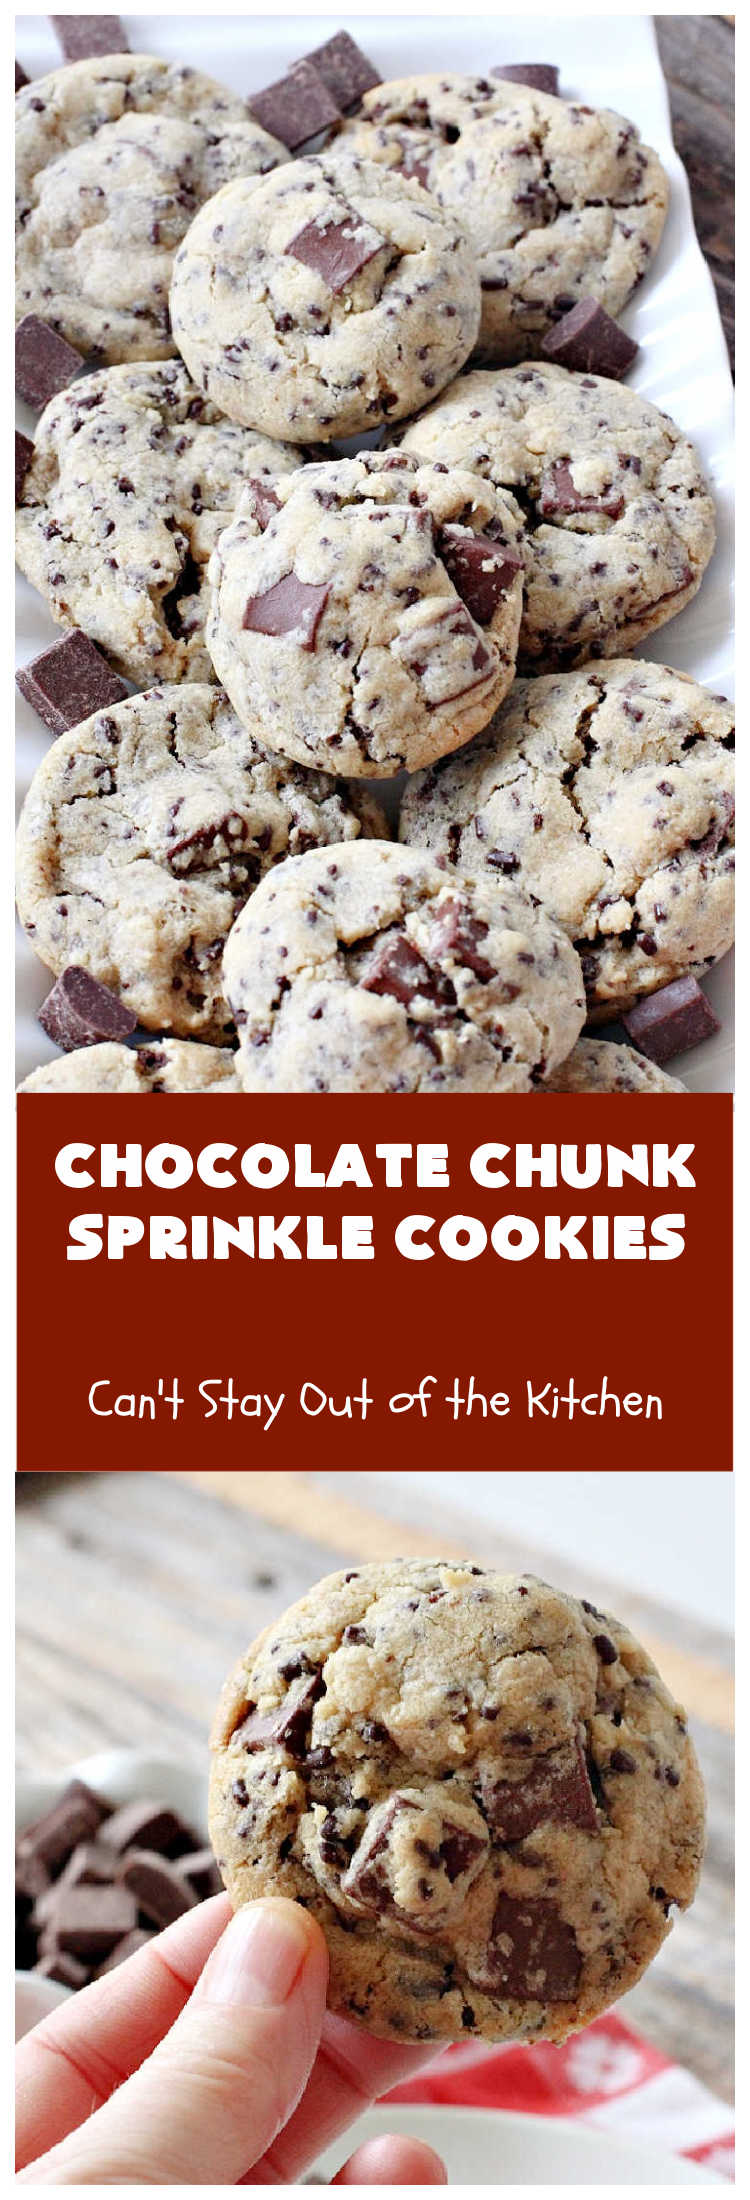 Chocolate Chunk Sprinkle Cookies | Can't Stay Out of the Kitchen | these outrageous #cookies are loaded with #chocolate chunks & chocolate #sprinkles. They use a #MrsFields #copycat cookie dough #recipe so they're absolutely amazing. #dessert #tailgating #ChocolateChunks #ChocolateDessert #ChocolateChipCookie #holiday #baking #ChocolateChunkSprinkleCookies